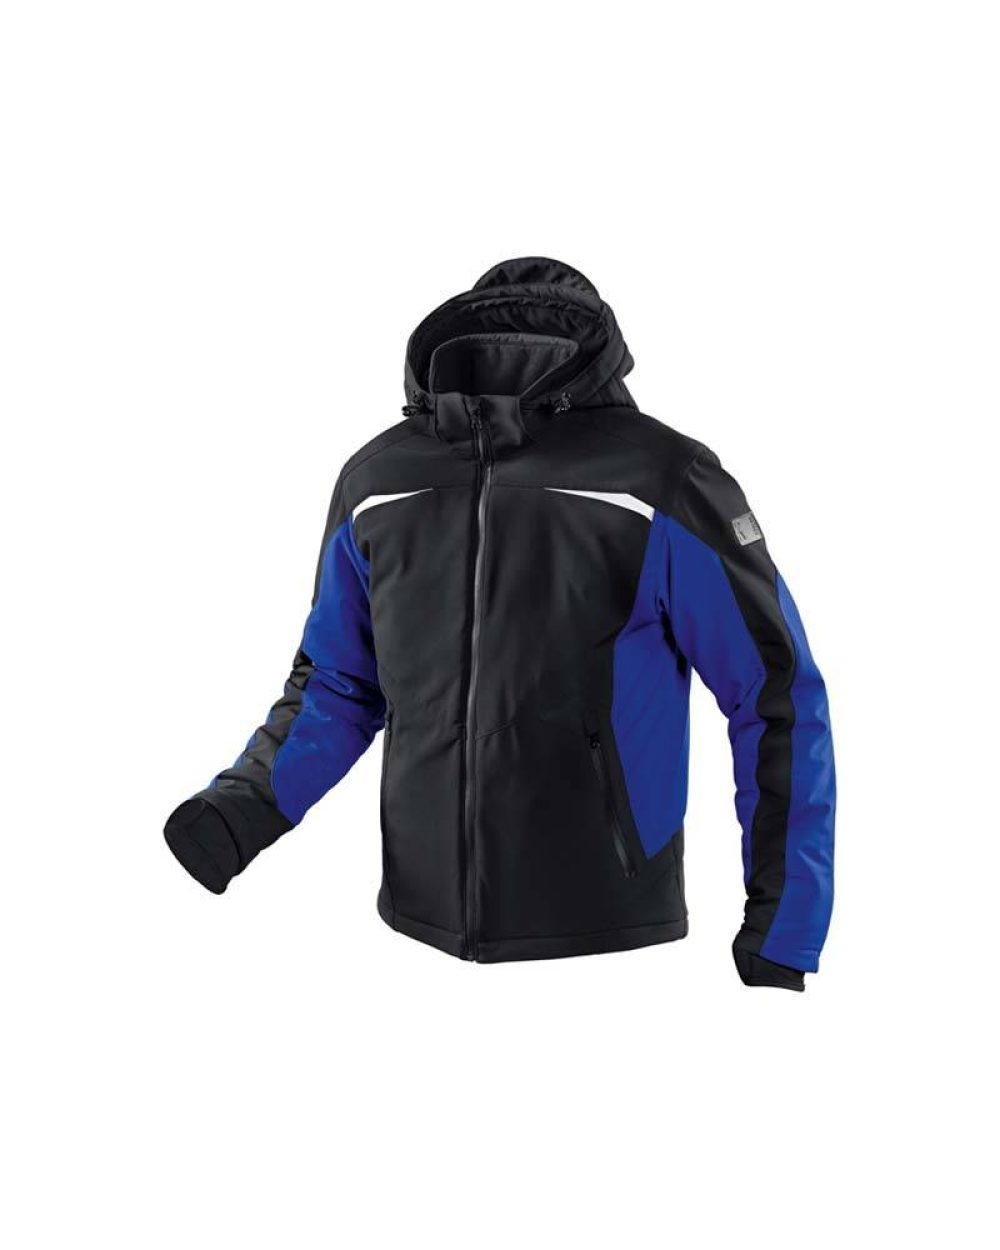 kuebler-weather-jacke-1041_7322-9946_64